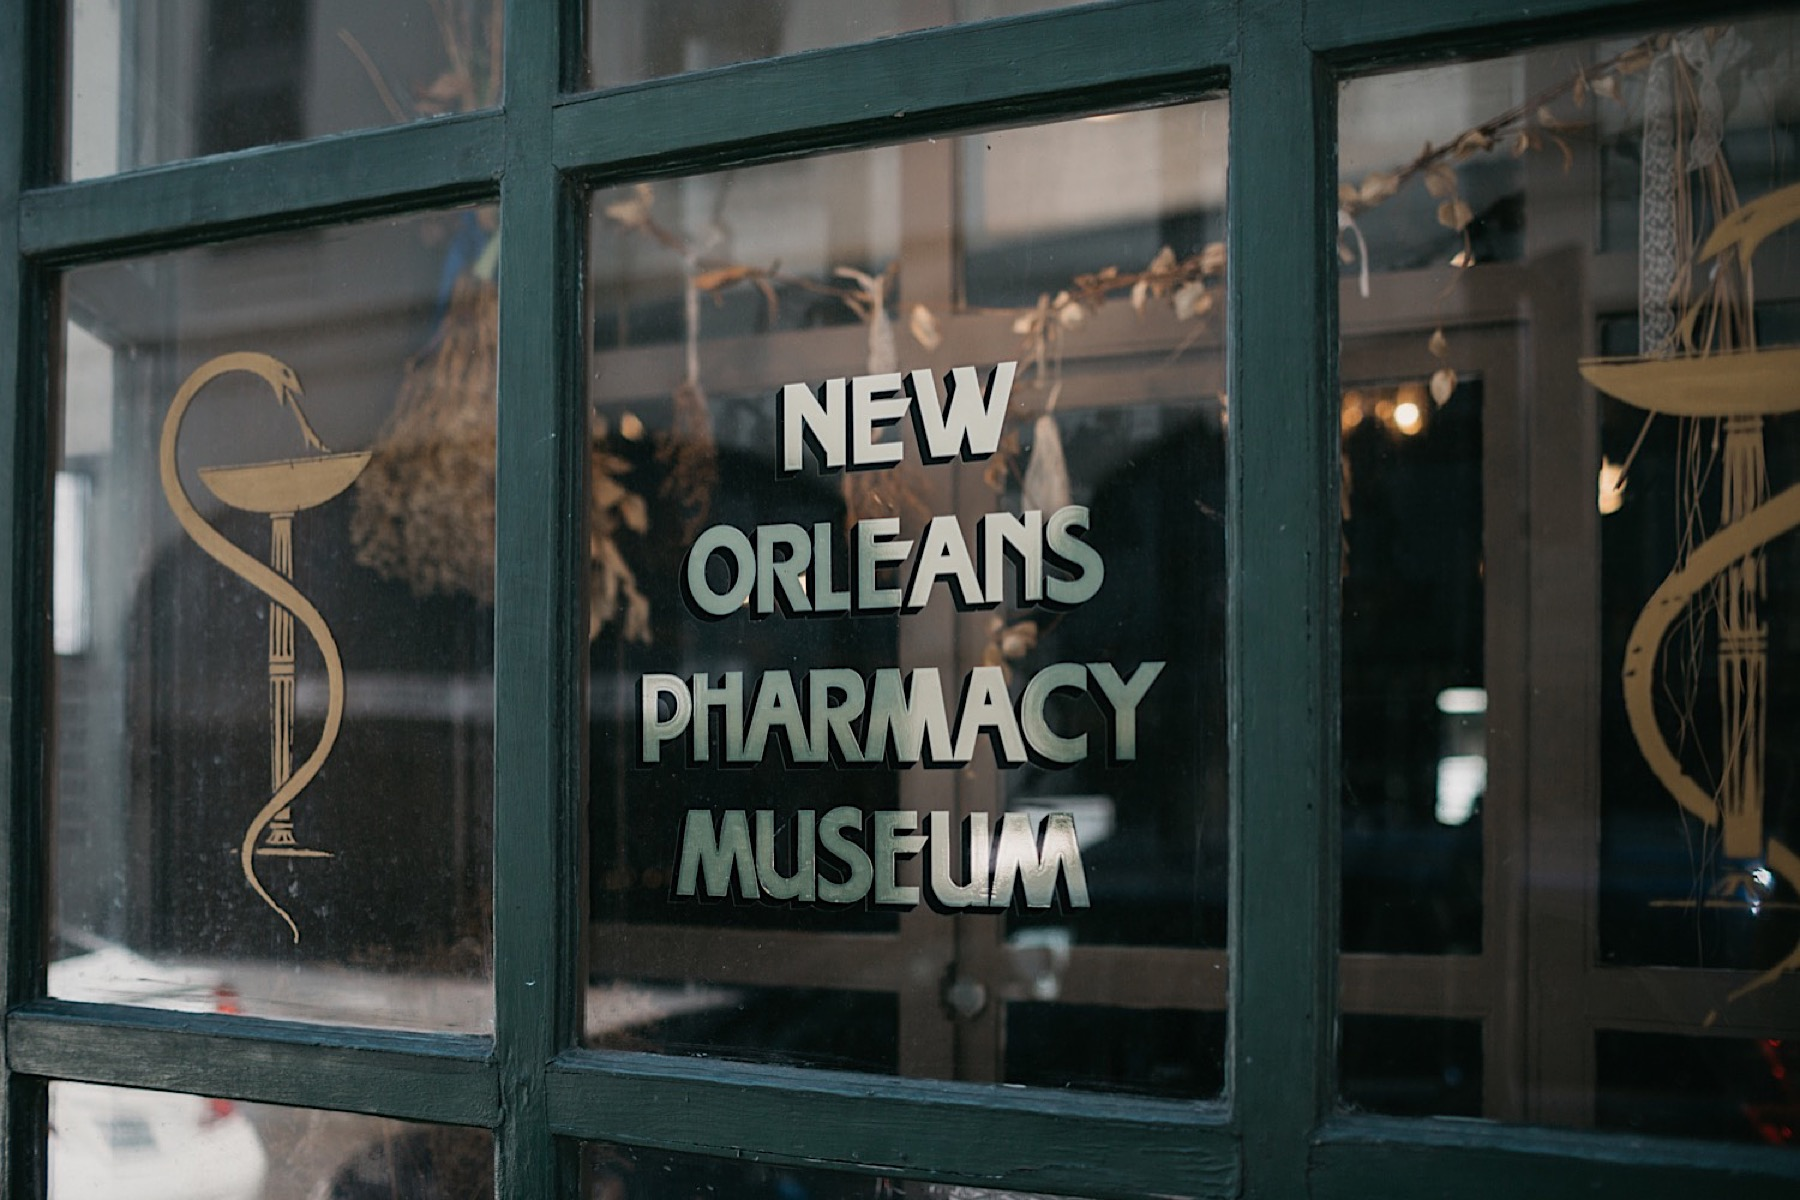 moody pharmacy museum wedding, pharmacy museum wedding in new orleans, new orleans pharmacy museum wedding, dark and moody pharmacy museum wedding, funky new orleans wedding venue, moody new orleans wedding venue, quirky new orleans wedding venue, offbeat new orleans wedding venue, charming new orleans wedding venue, halloween new orleans wedding, dark new orleans wedding, initmate new orleans wedding ideas, wedding ideas for intimate new orleans wedding, new orleans elopement